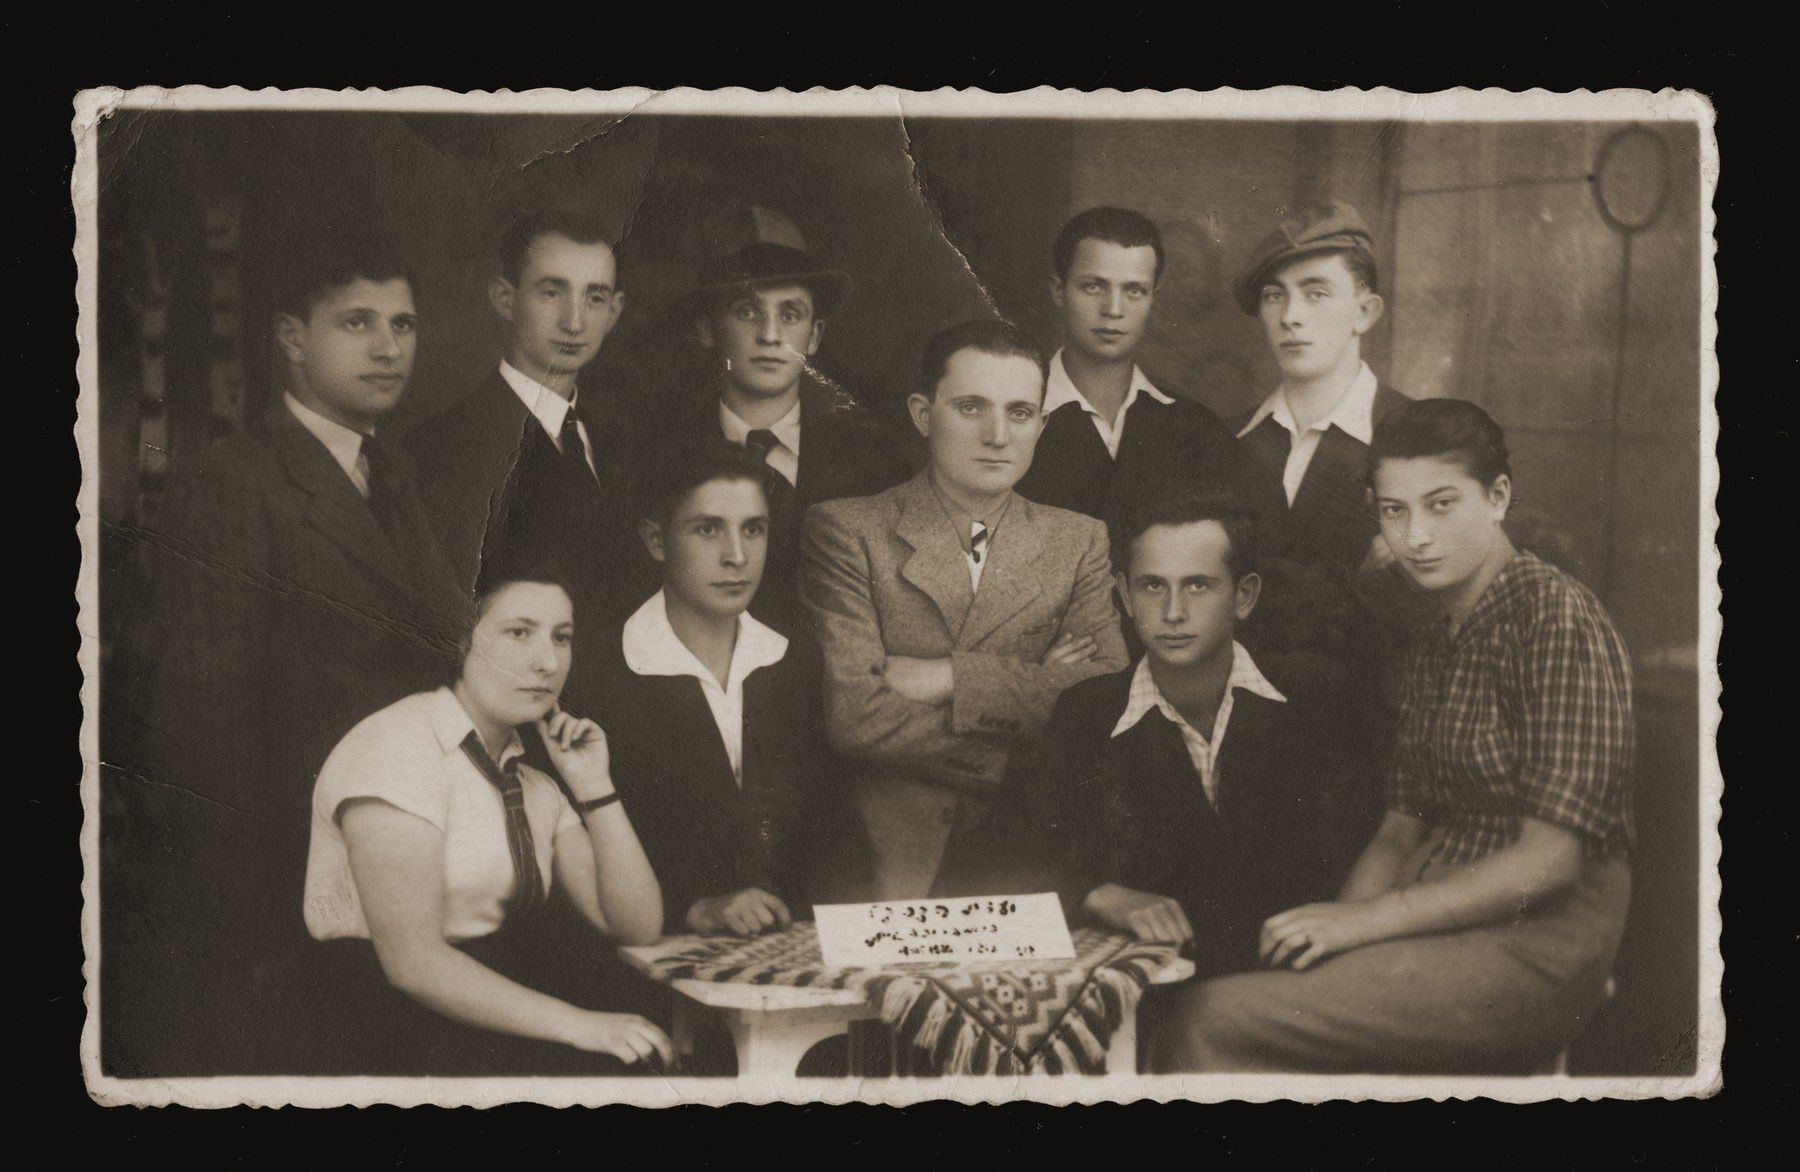 Group portrait of representatives from various Zionist youth groups at a meeting of the Keren Kayemet [Jewish National Fund] in Dabrowa.  Pictured from left to right are Fela Szeps (Gordonia), Avram Bajtner, Motel Rozenblum (Shomer Hatzair, Poalei Zion) and Yehiel Feder (Hanoar Hatzioni).  Standing are unknown, unknown, Menahem Bokovski, Chaim? Balicki and Peretz Miodovnik.